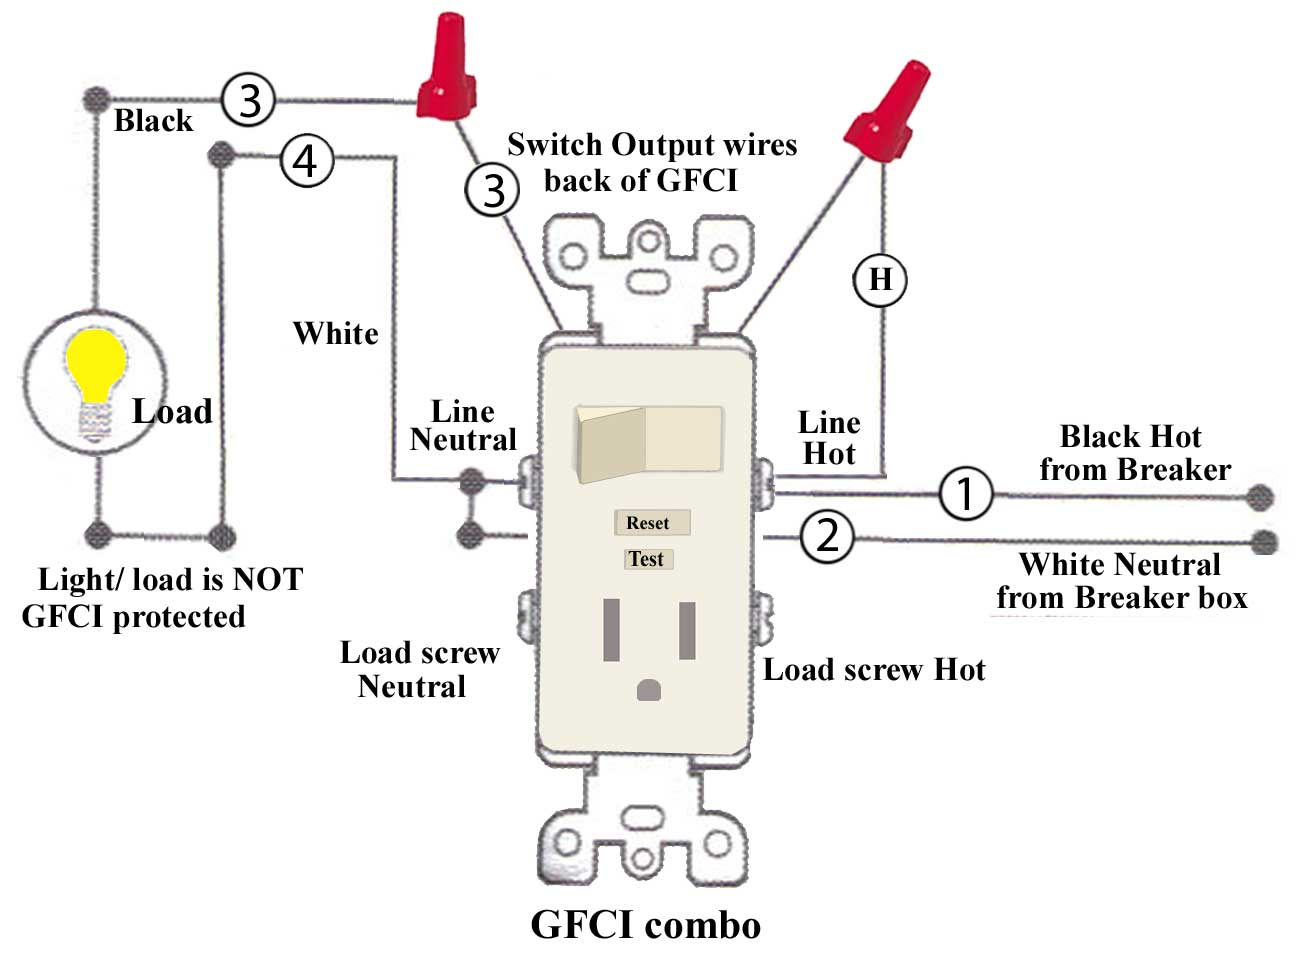 Spa Disconnect Wiring | Gfci Wire Diagram Wiring Diagram 2019